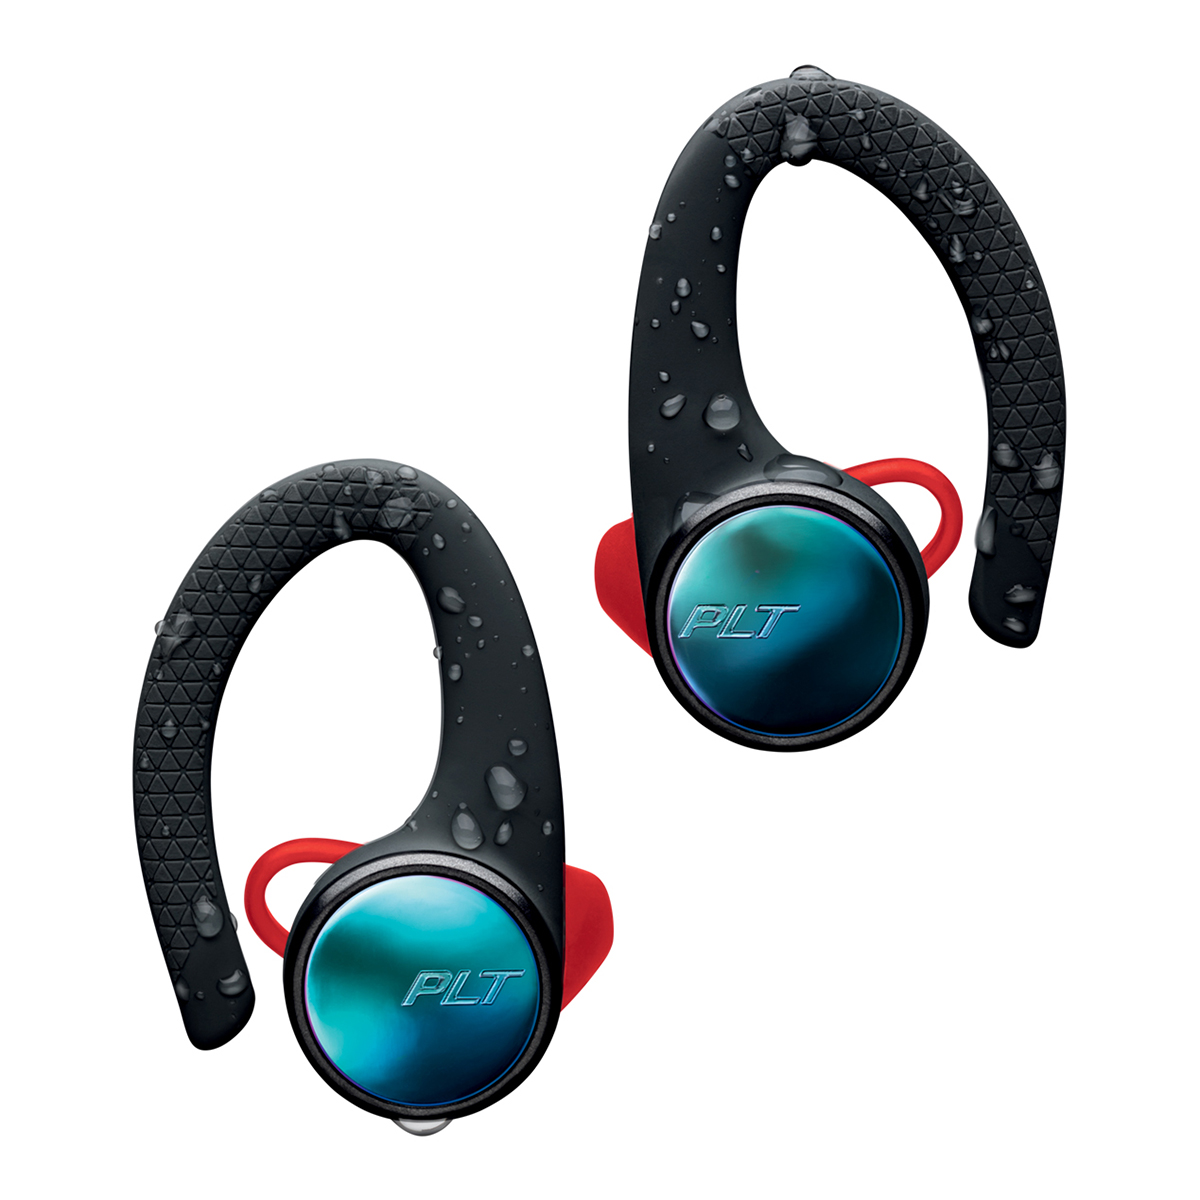 Plantronics Backbeat Fit 3100 2100 And 350 Quick Review Sports Soul Run Free Pro Wireless Bluetooth Earphone Headset Storm Black The Is Available In Two Colors Red Left Grey Right